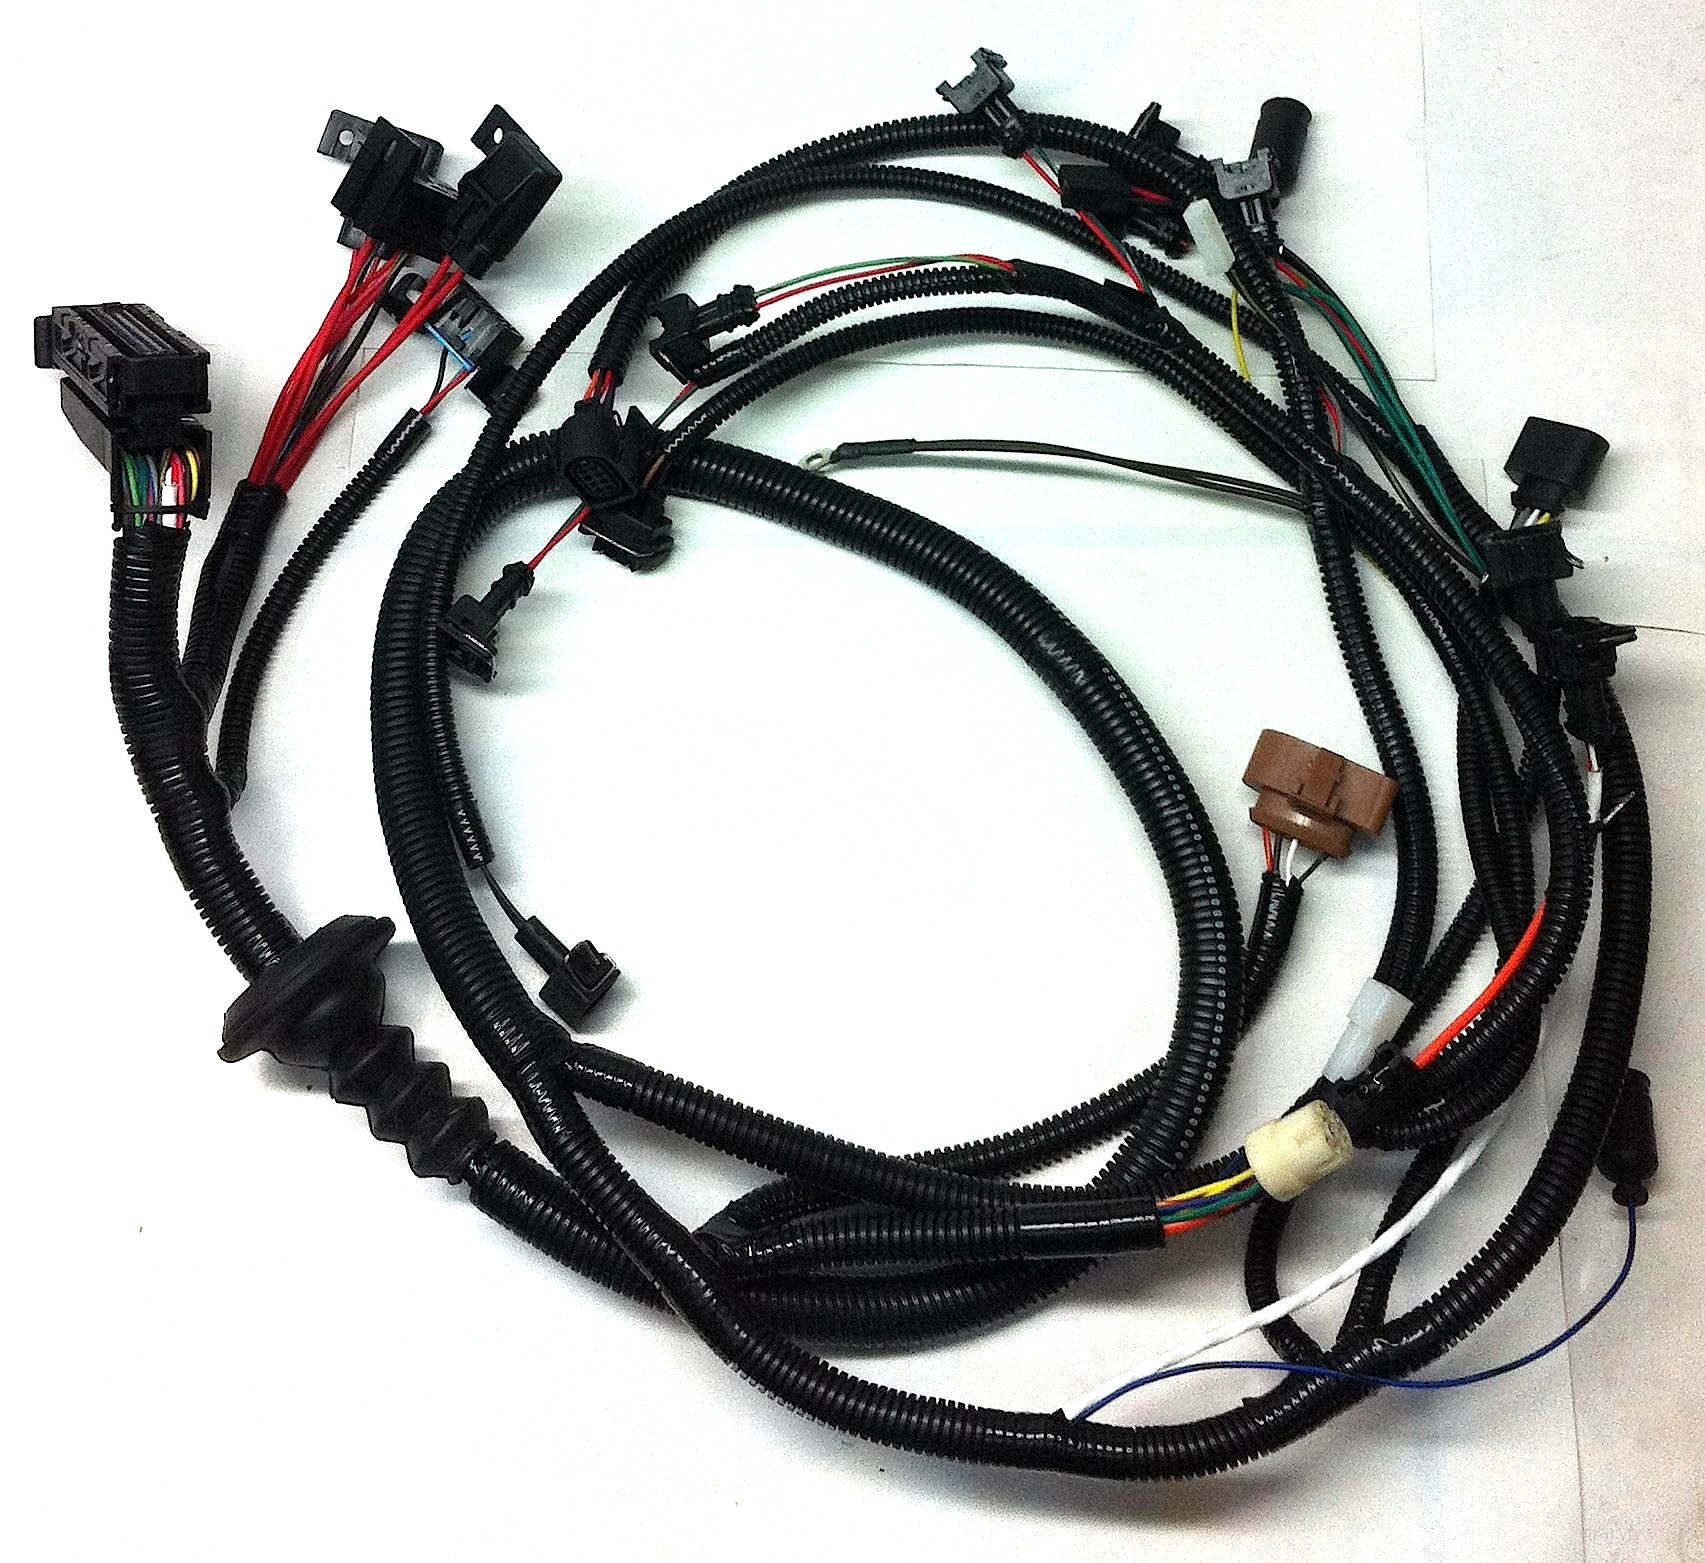 2lr tiico conversion wiring harness foreign auto supply inc rh foreignautosupply com german automotive wiring harness diy automotive wiring harness